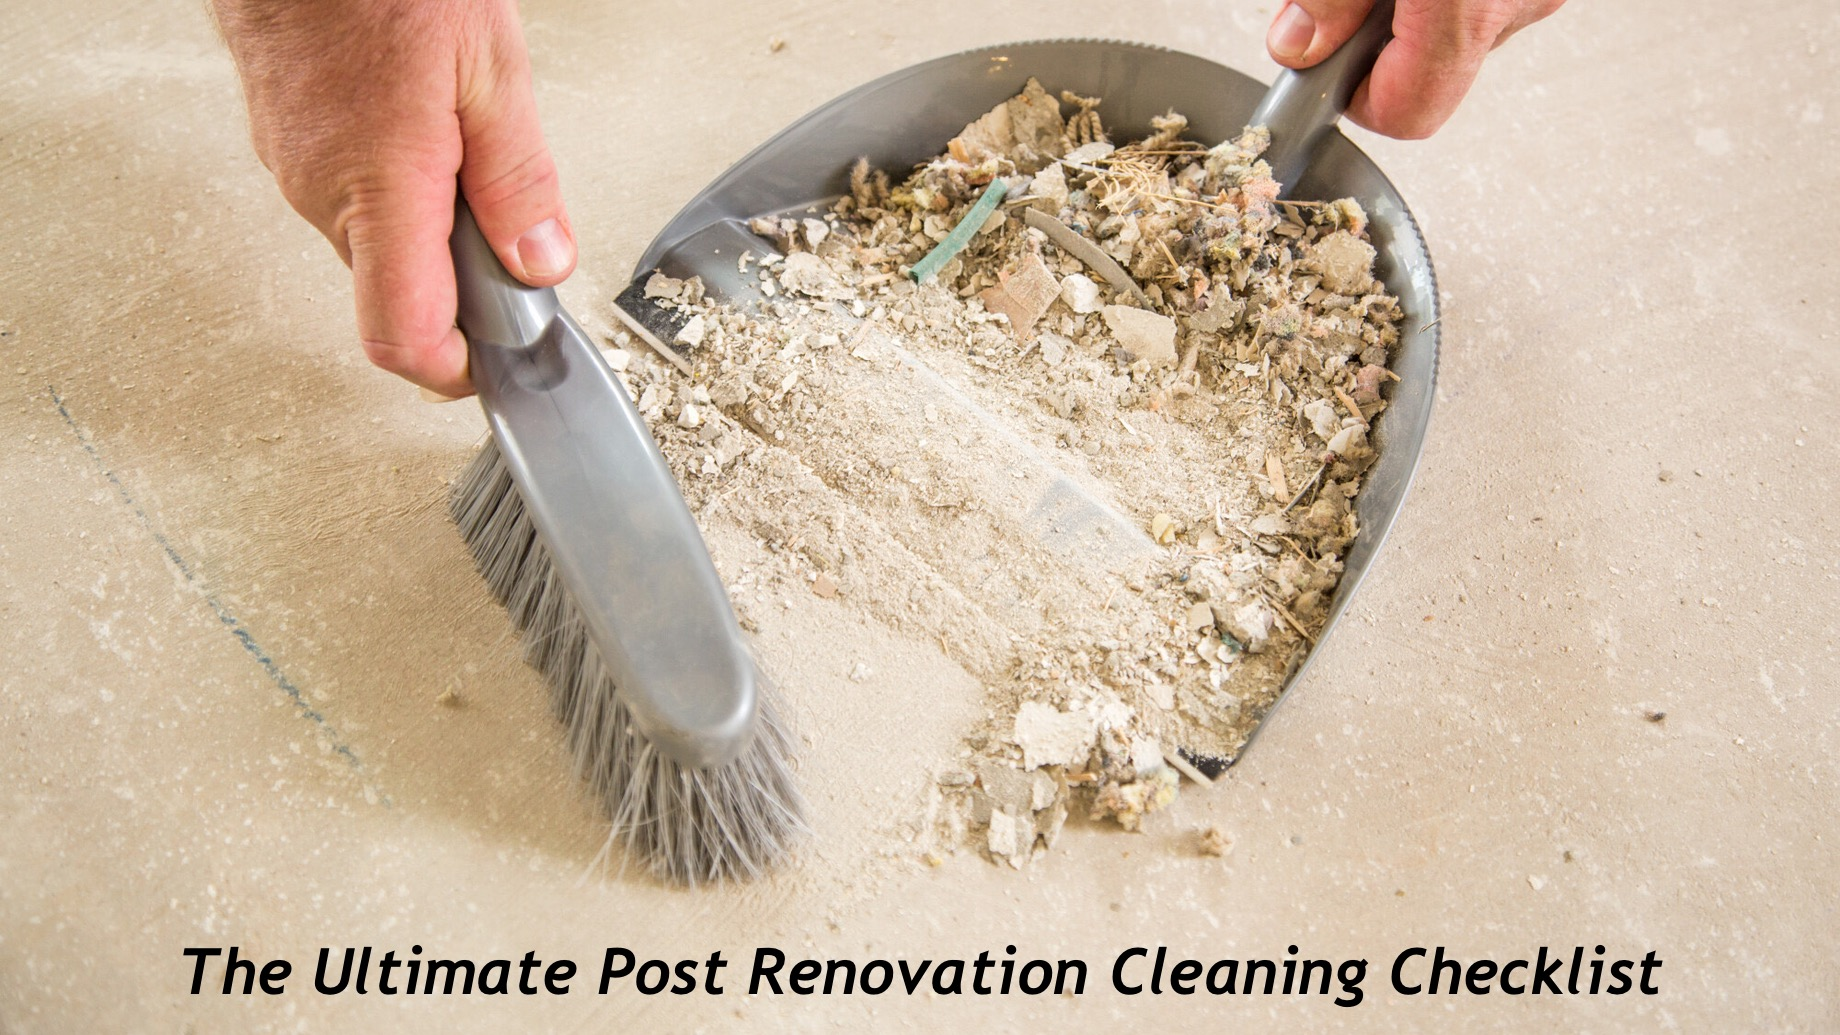 The Ultimate Post Renovation Cleaning Checklist